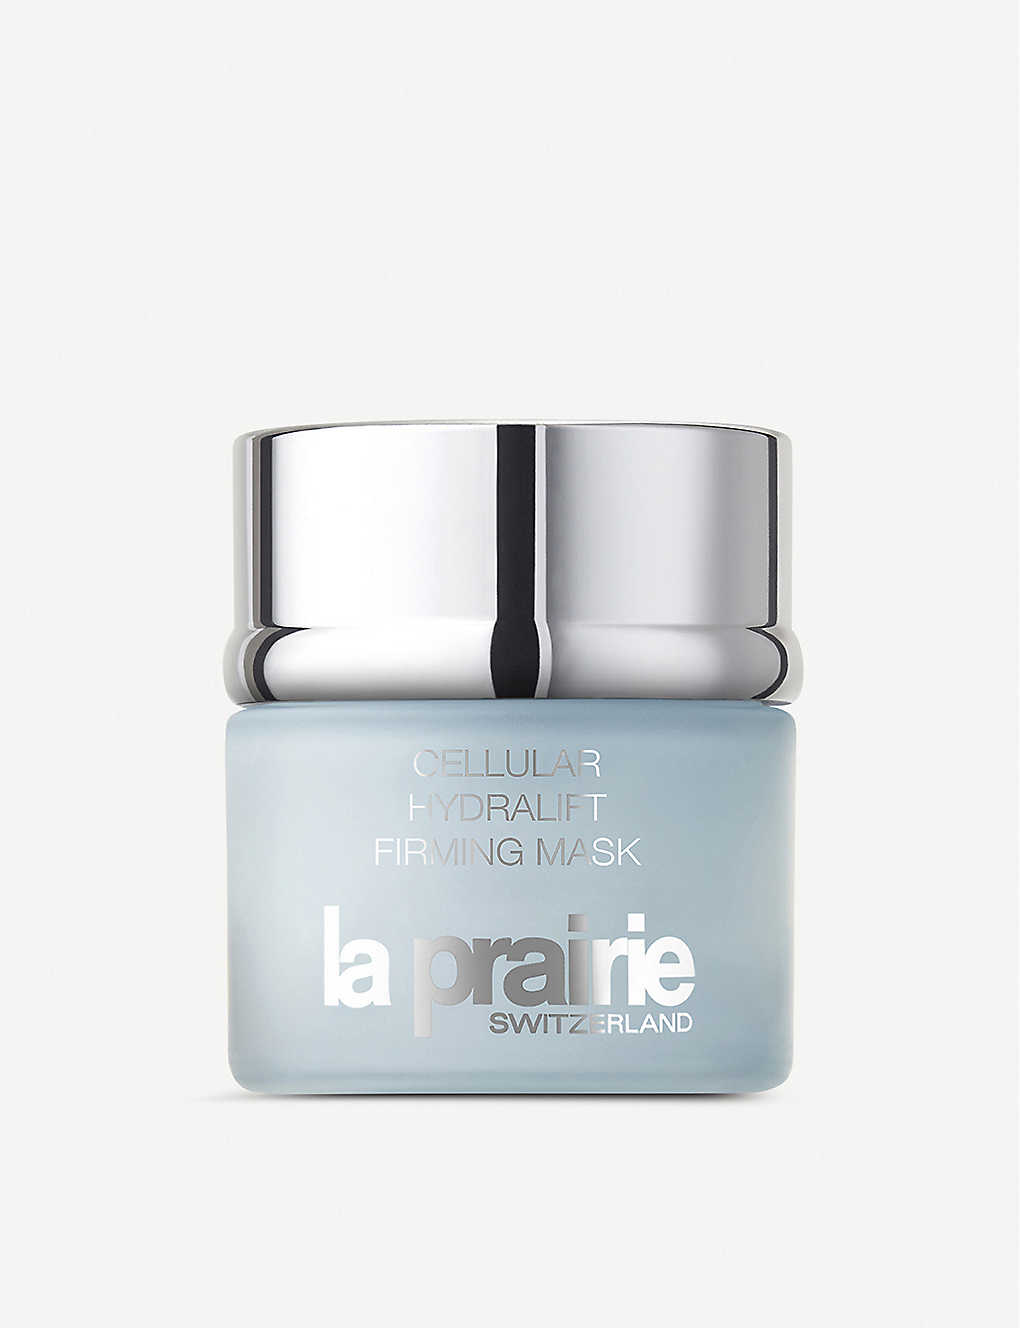 LA PRAIRIE: Cellular Hydralift Firming Mask 50ml